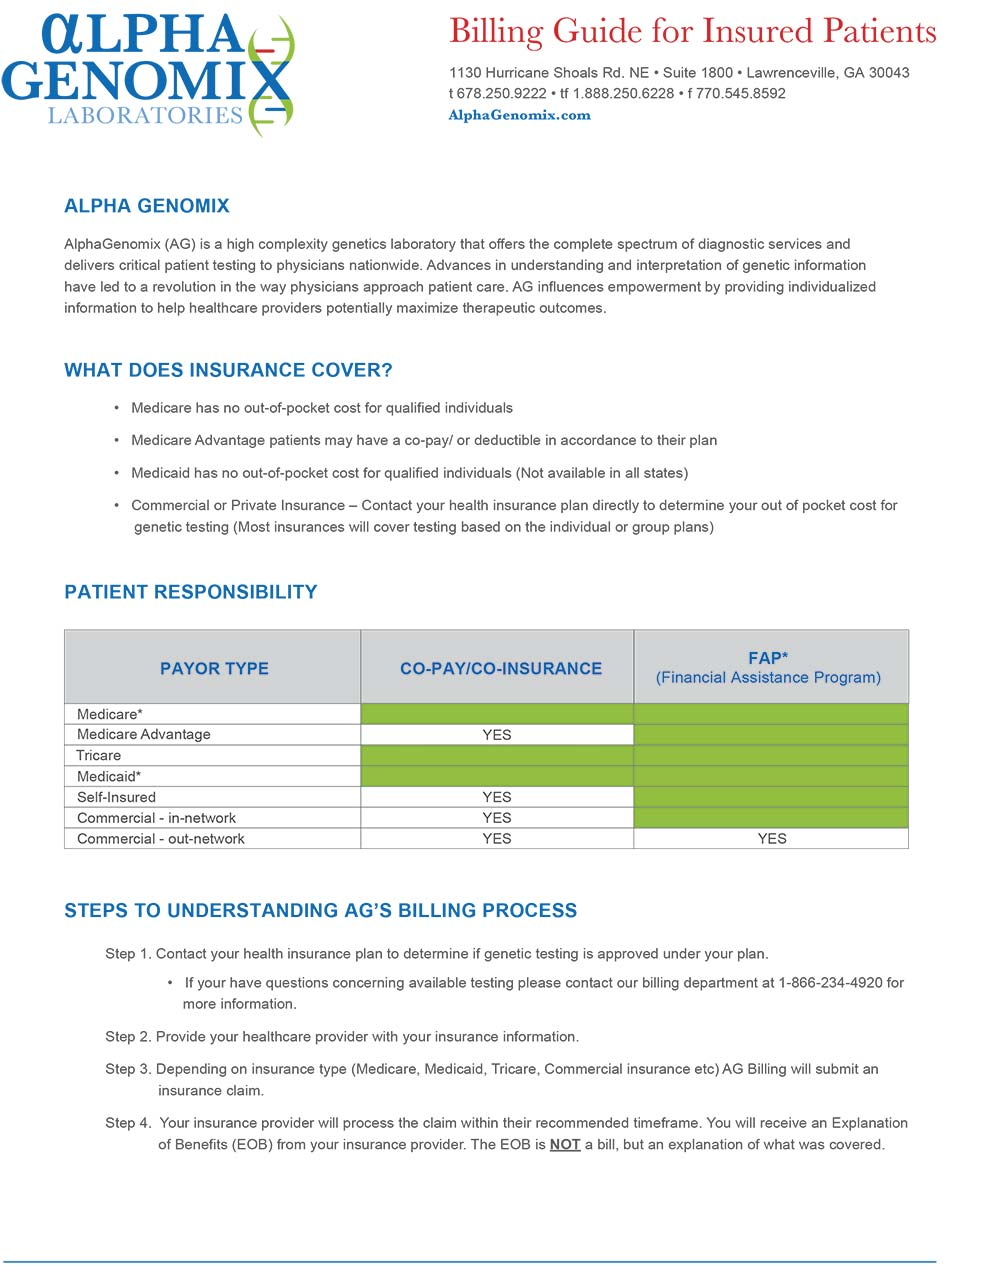 ag billing guide for insured patients